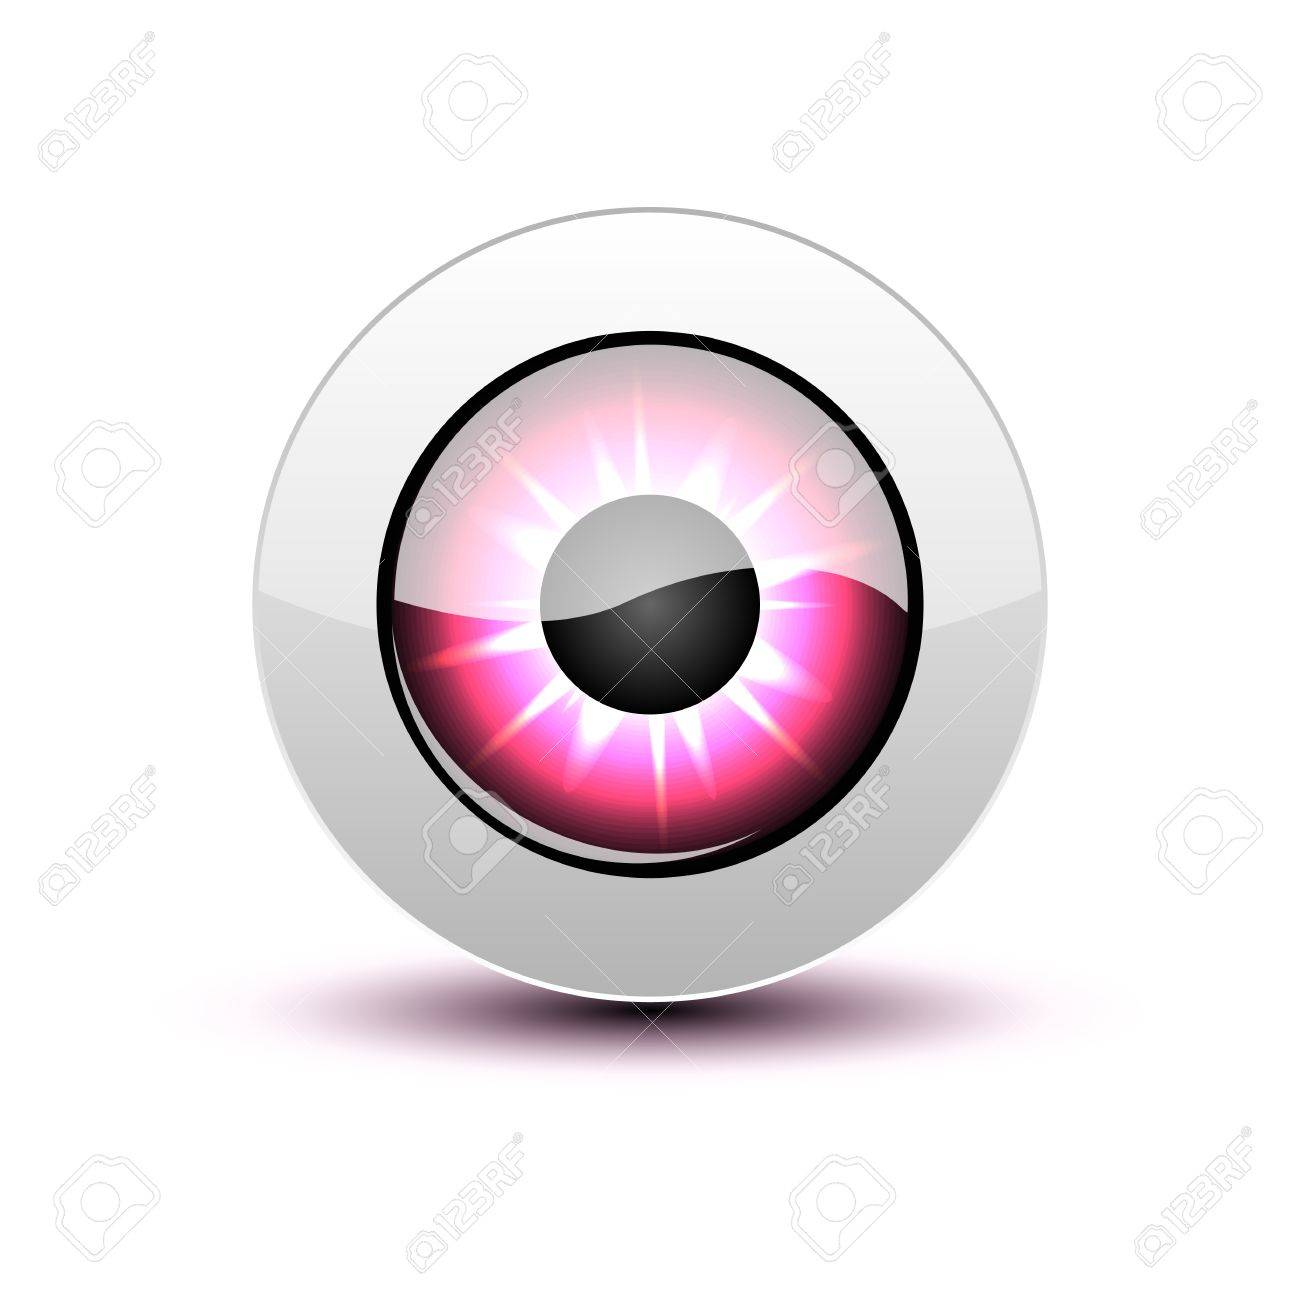 Pink eye icon with shadow on white. Stock Vector - 12391705